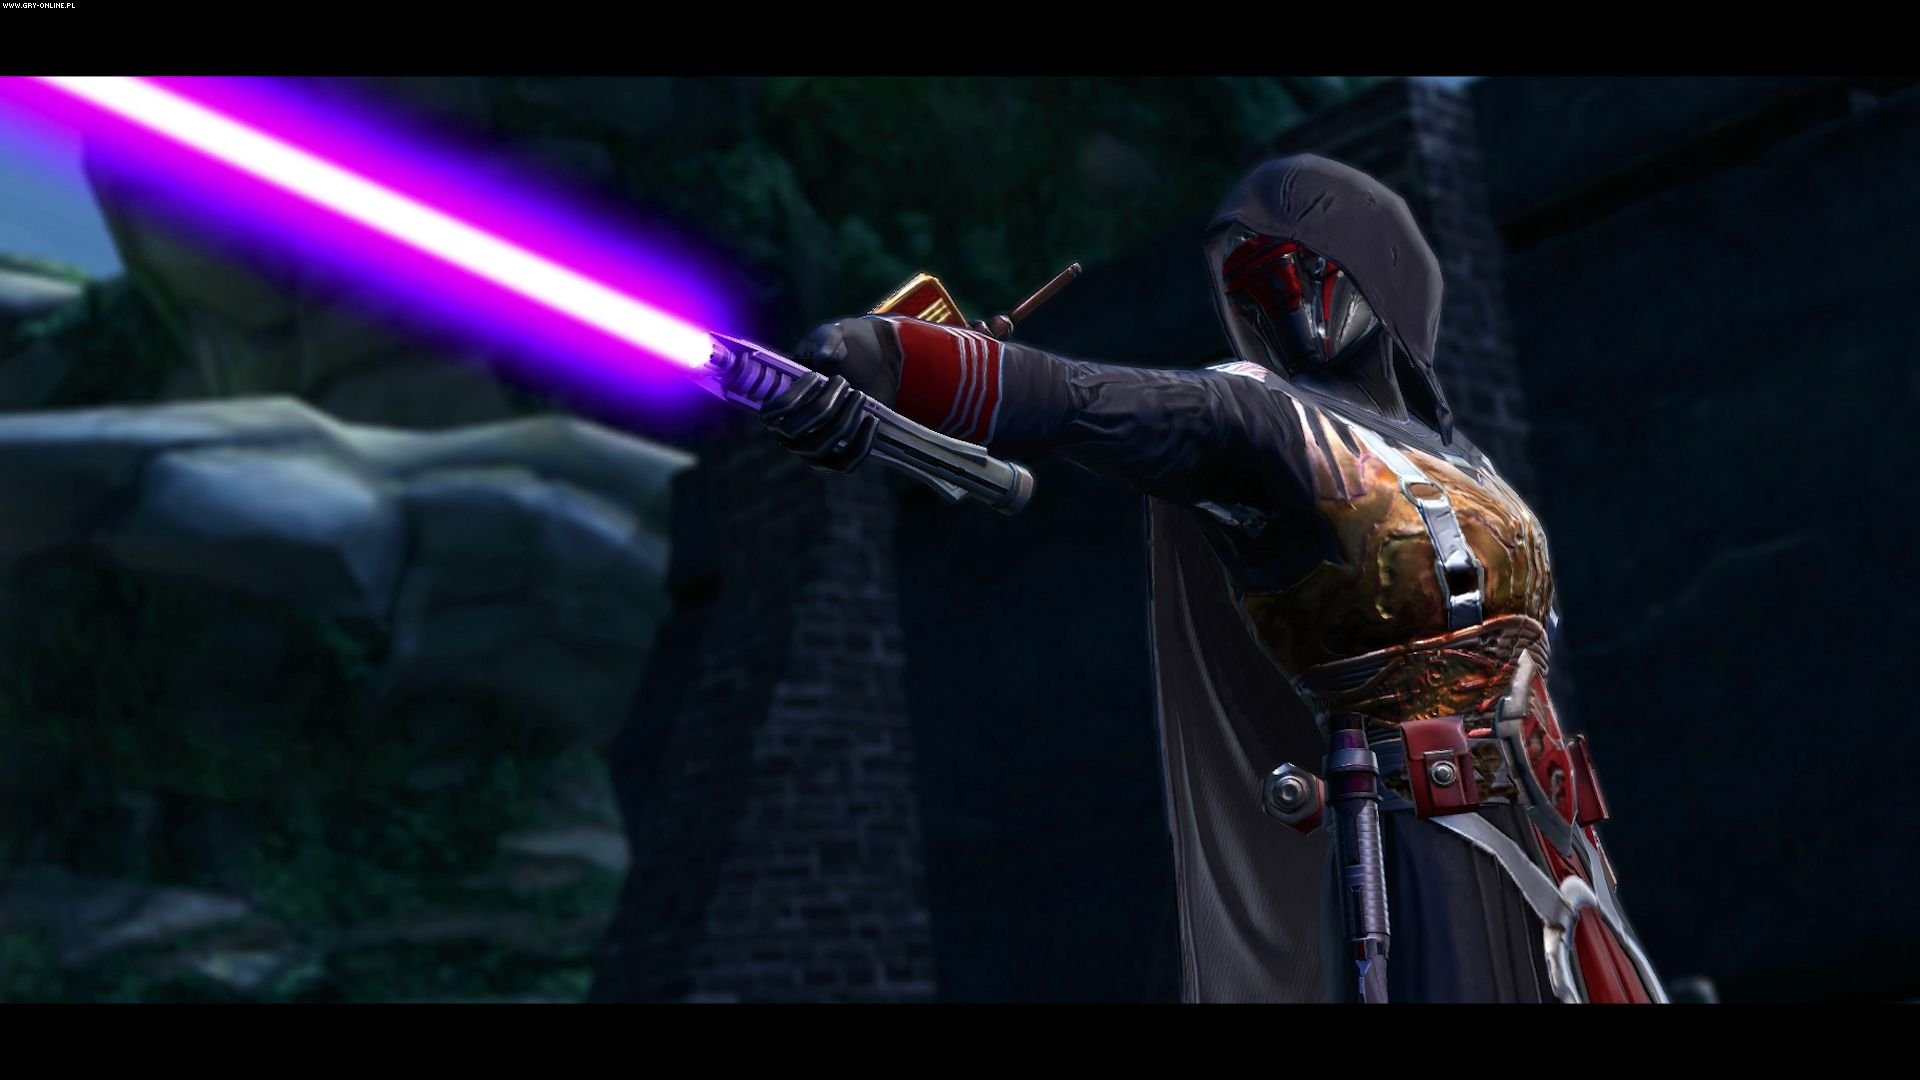 Star Wars: The Old Republic - Shadow of Revan PC Gry Screen 5/6, BioWare Corporation, Electronic Arts Inc.